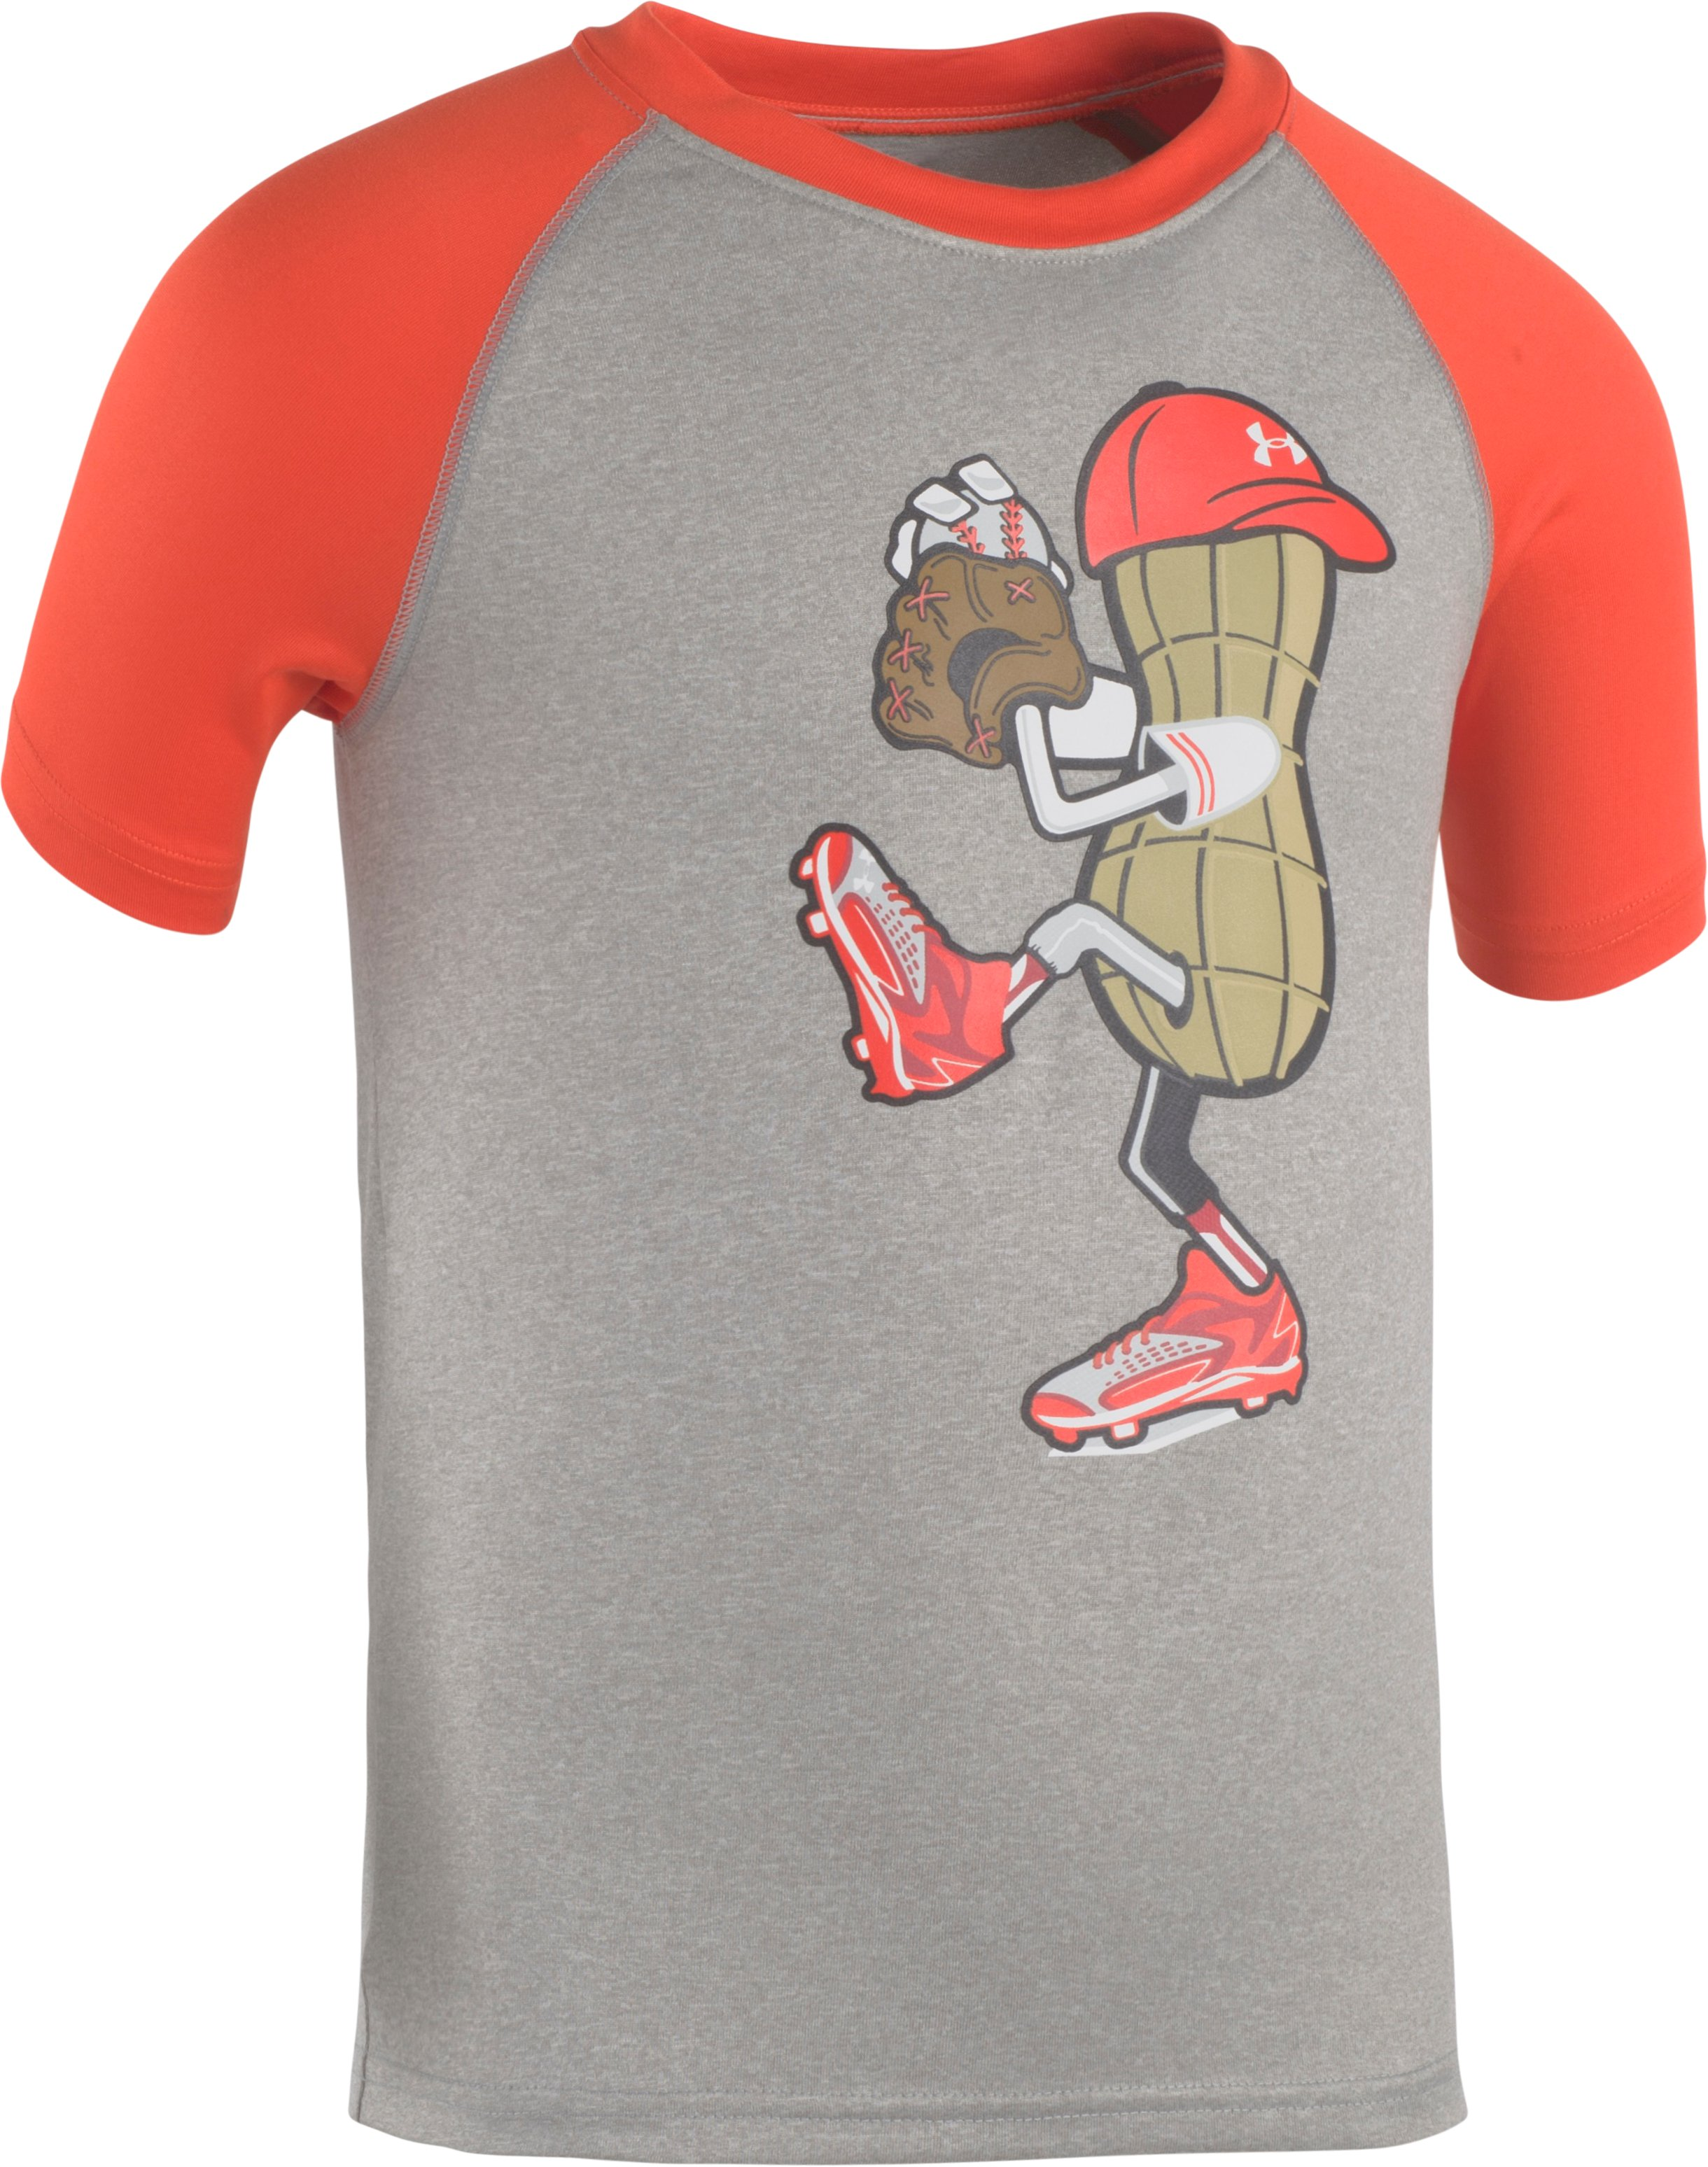 Boys' Pre-School UA Peanut Pitcher Short Sleeve Shirt, True Gray Heather, zoomed image